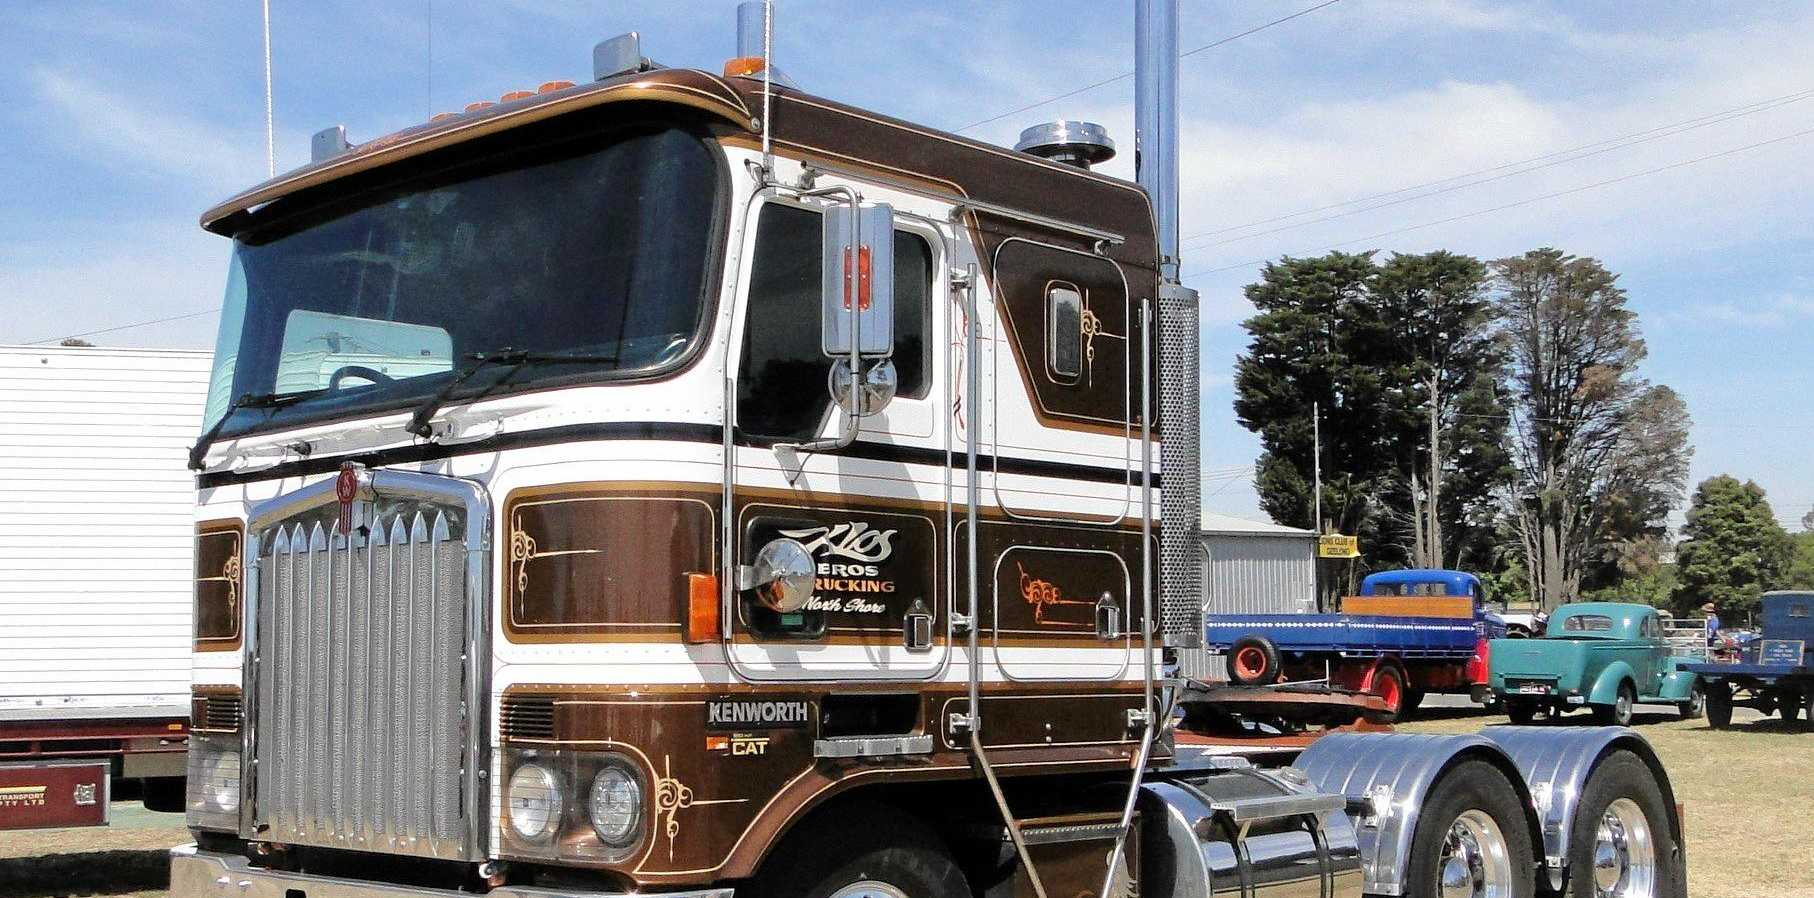 Nice Kenworth at the last Geelong Truck Show.